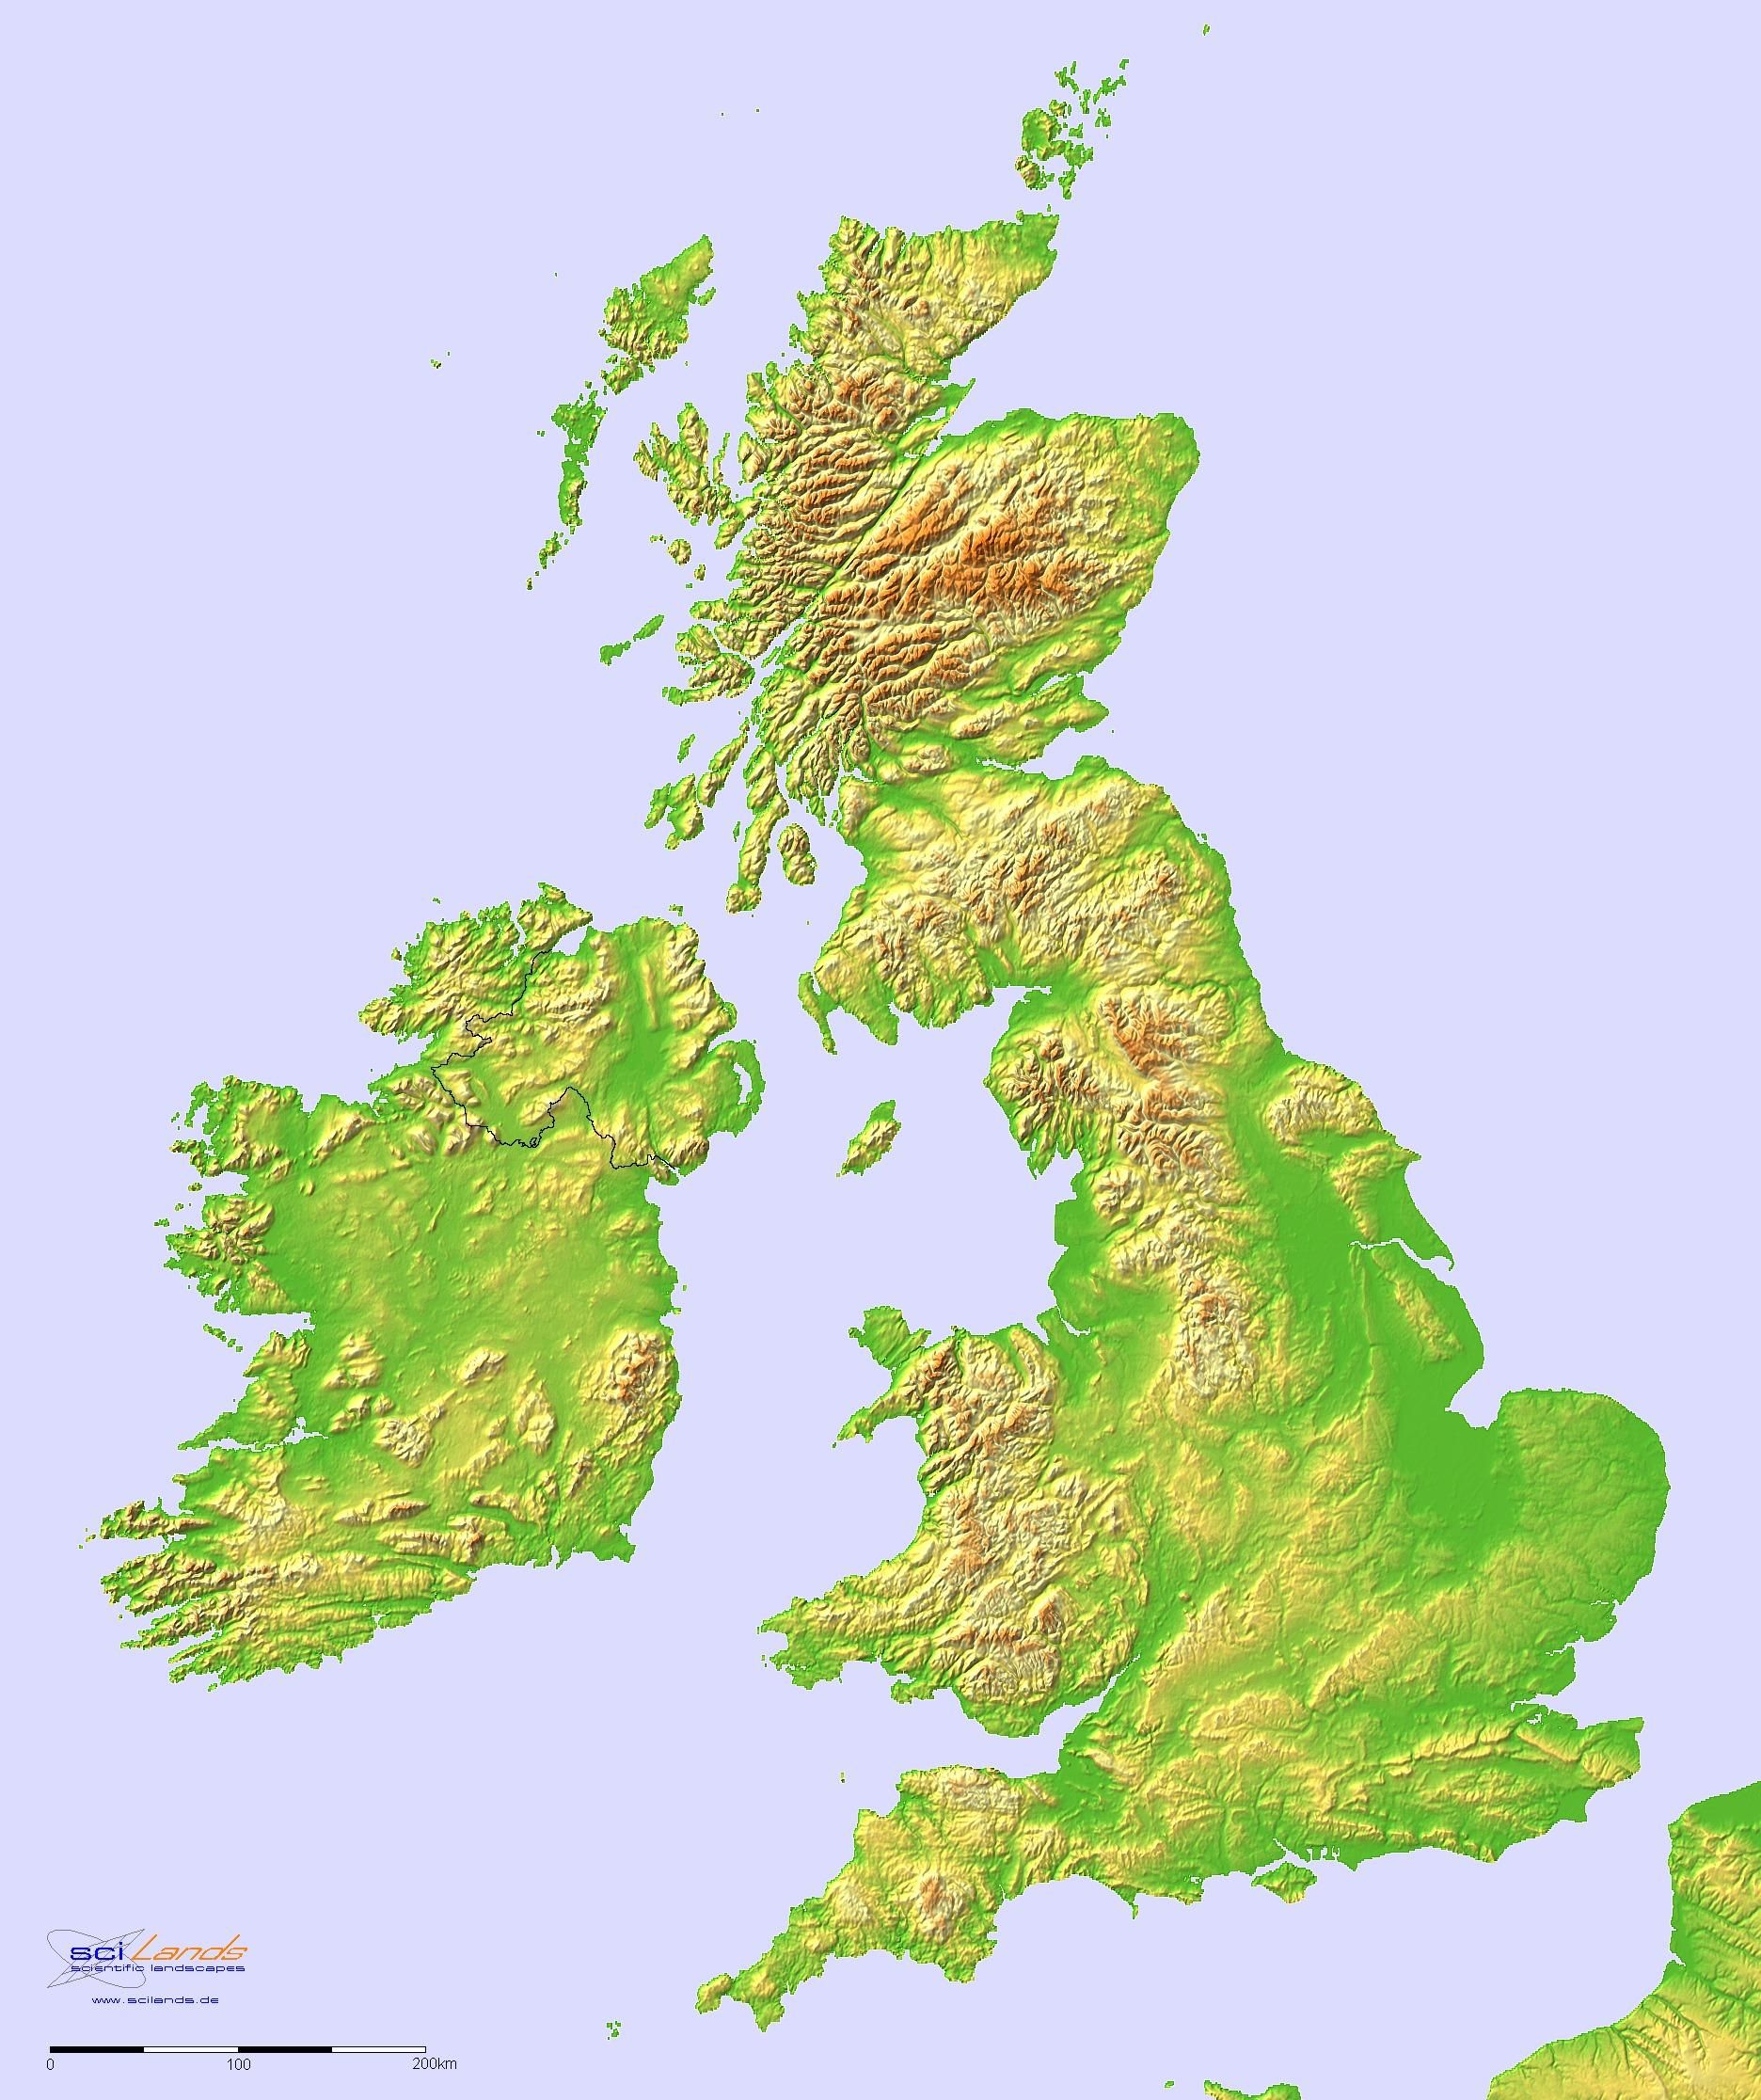 Altitude Map Uk Altitude map of the UK and Ireland | +RPG Cartography and Urban